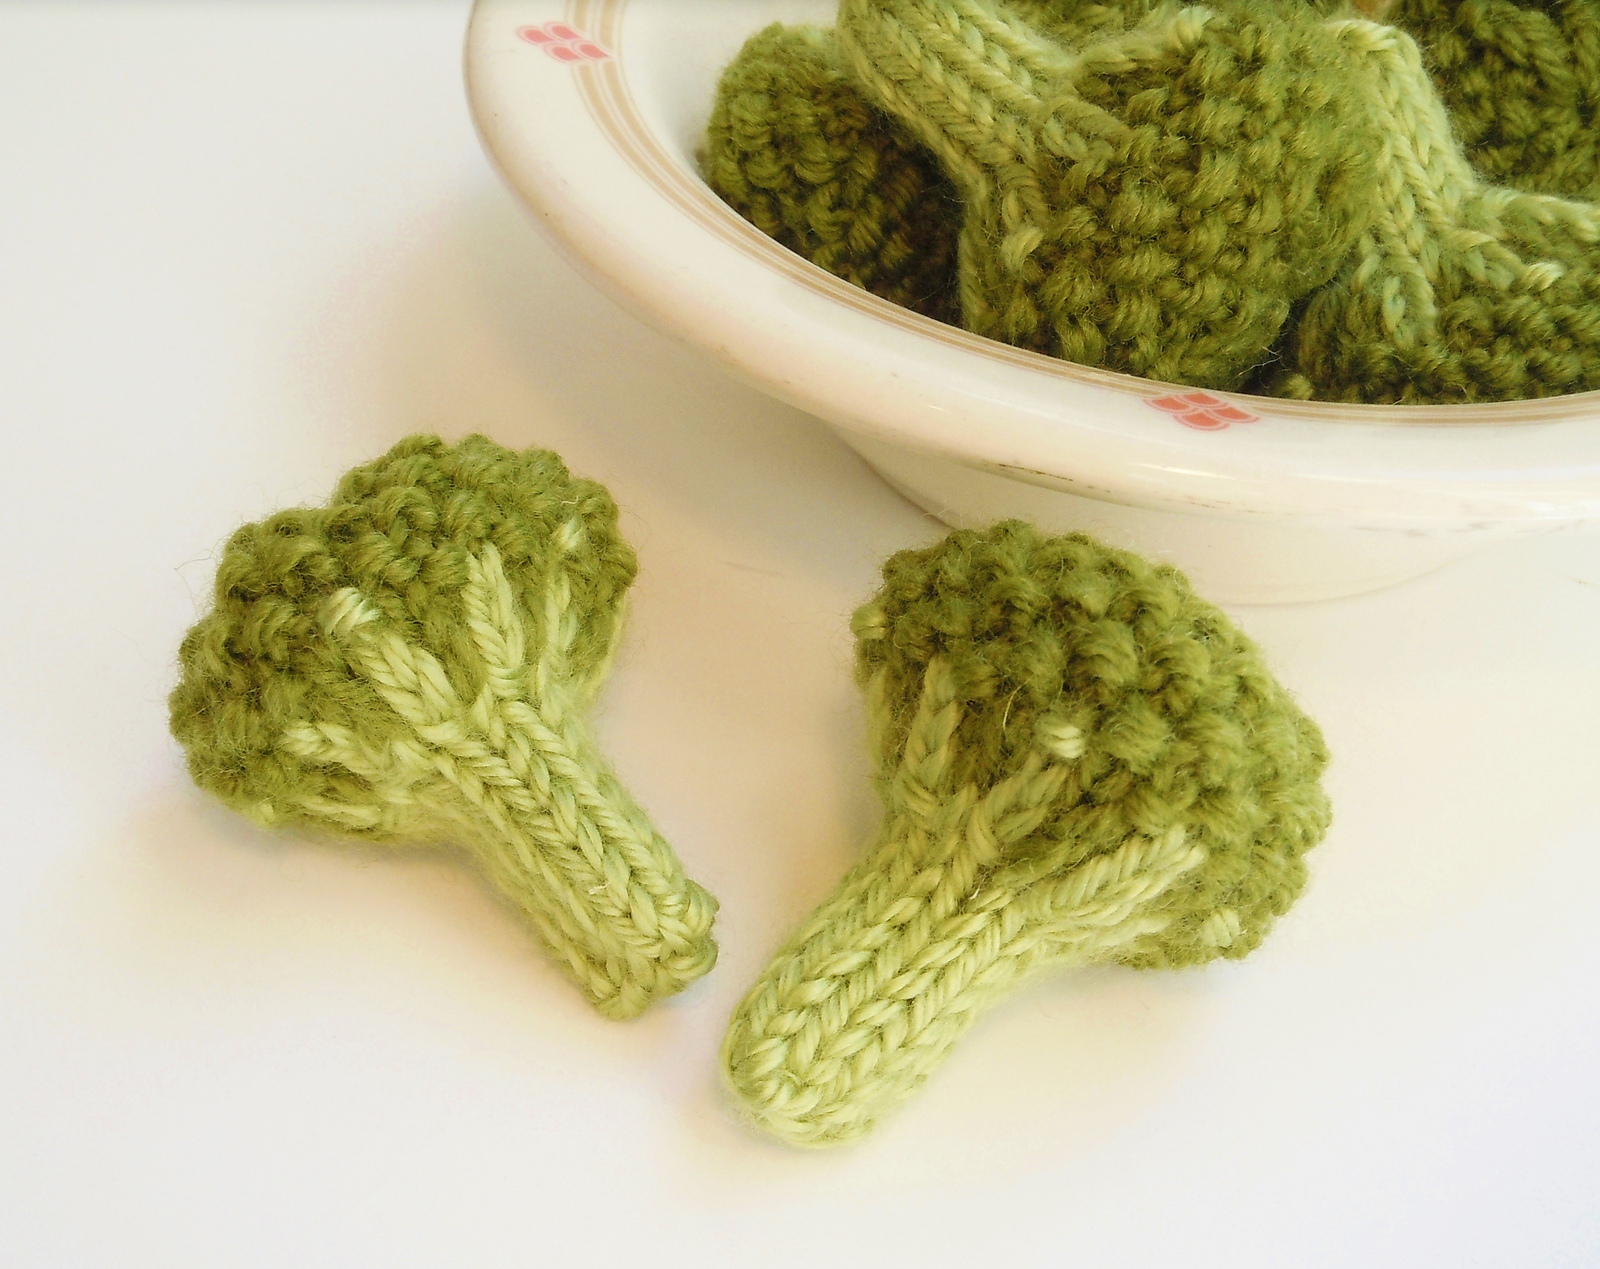 Knitted Steamed Broccoli Florets - Pattern Available!